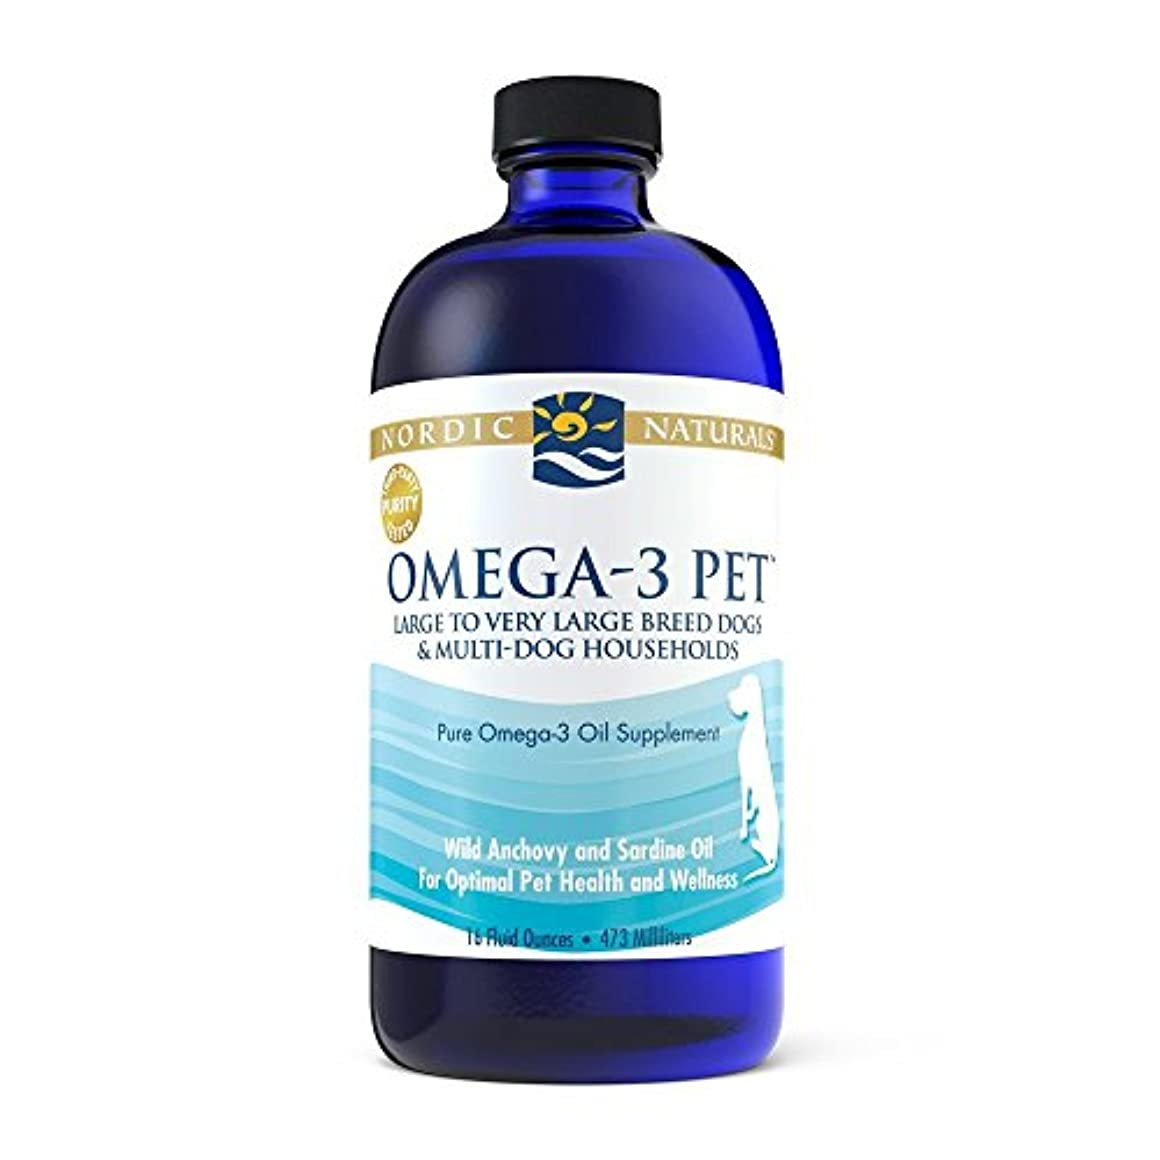 クマノミぺディカブ消費者Nordic Naturals Fish Oil OMEGA-3 Essential Fatty Acid for Dogs + Cats 16 oz 海外直送品